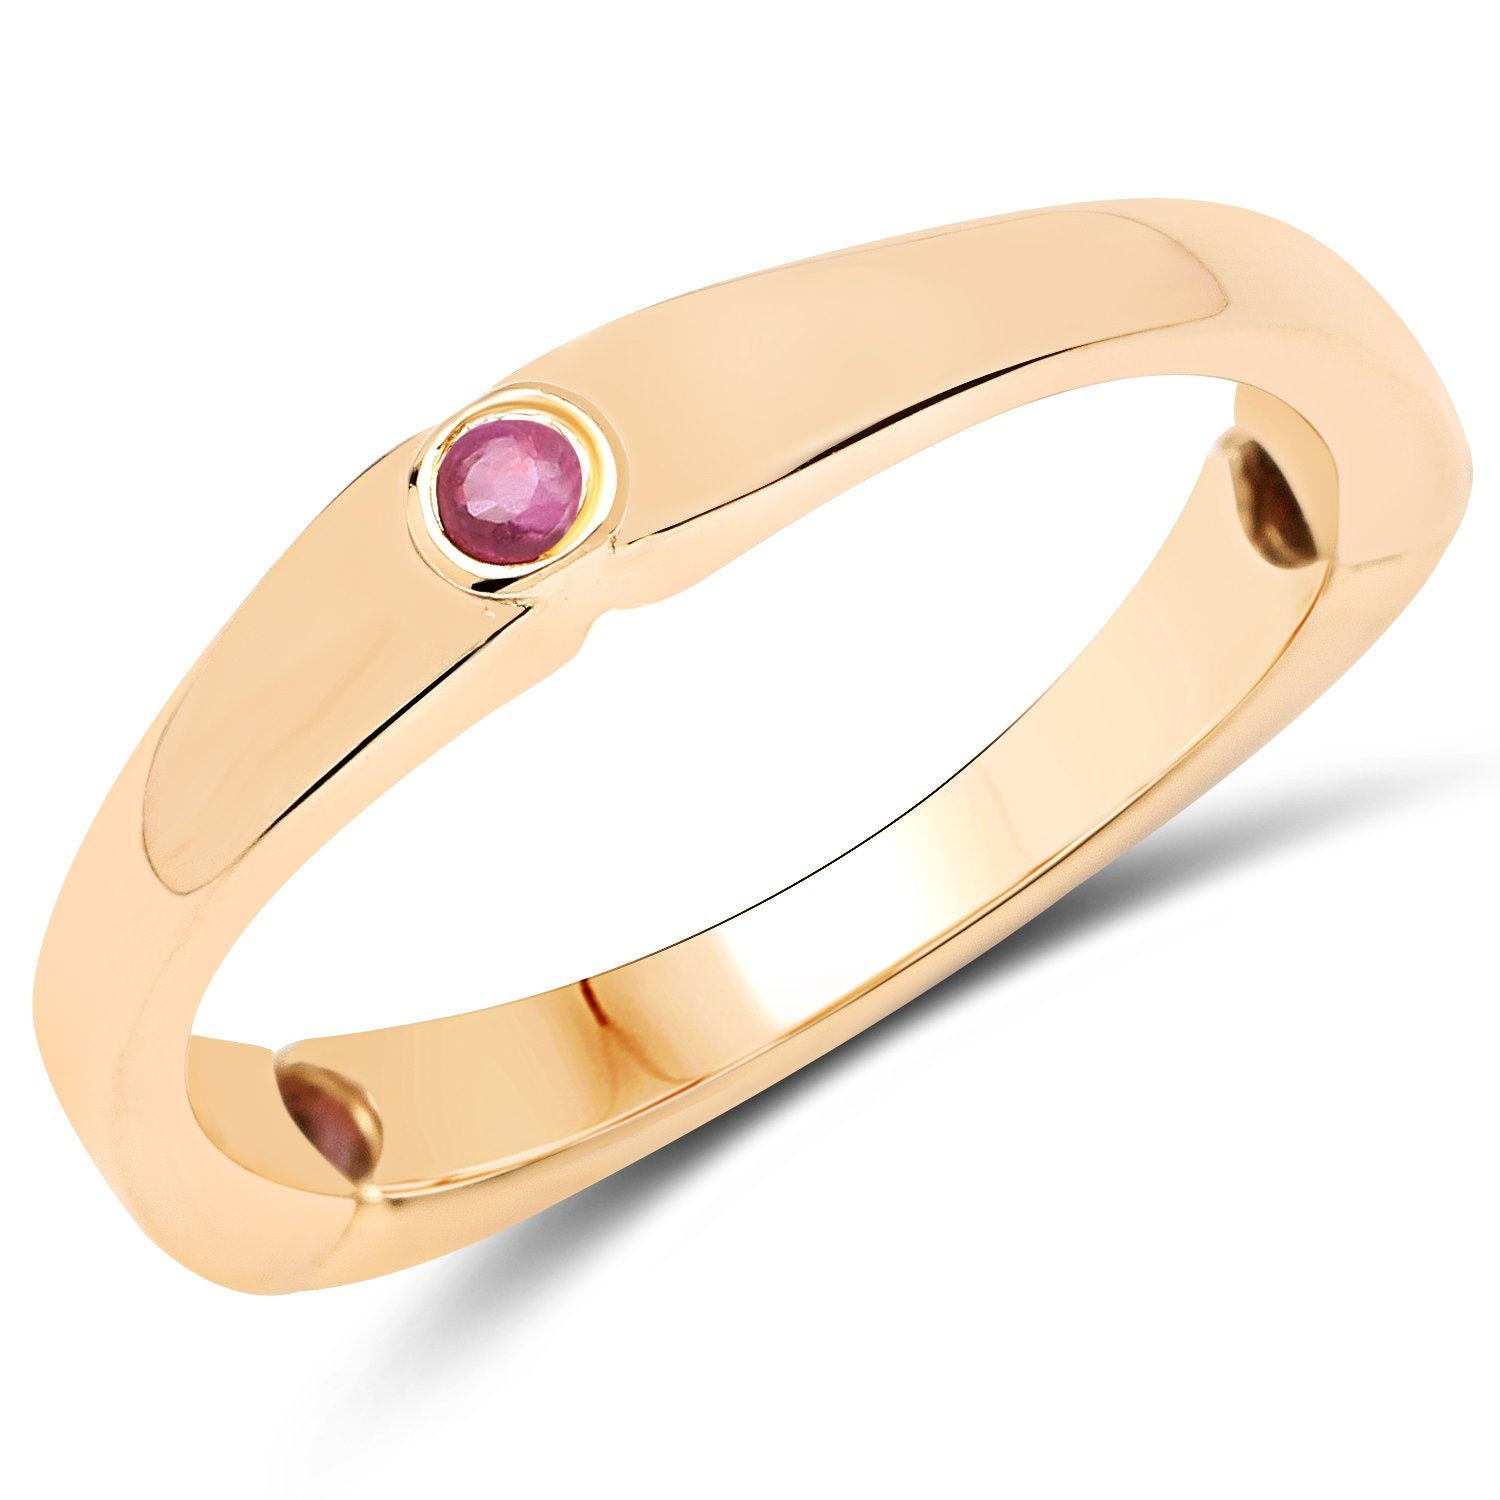 LoveHuang 0.14 Carats Genuine Ruby Matte Finish Trio Ring Solid .925 Sterling Silver With 18KT Yellow Gold Plating